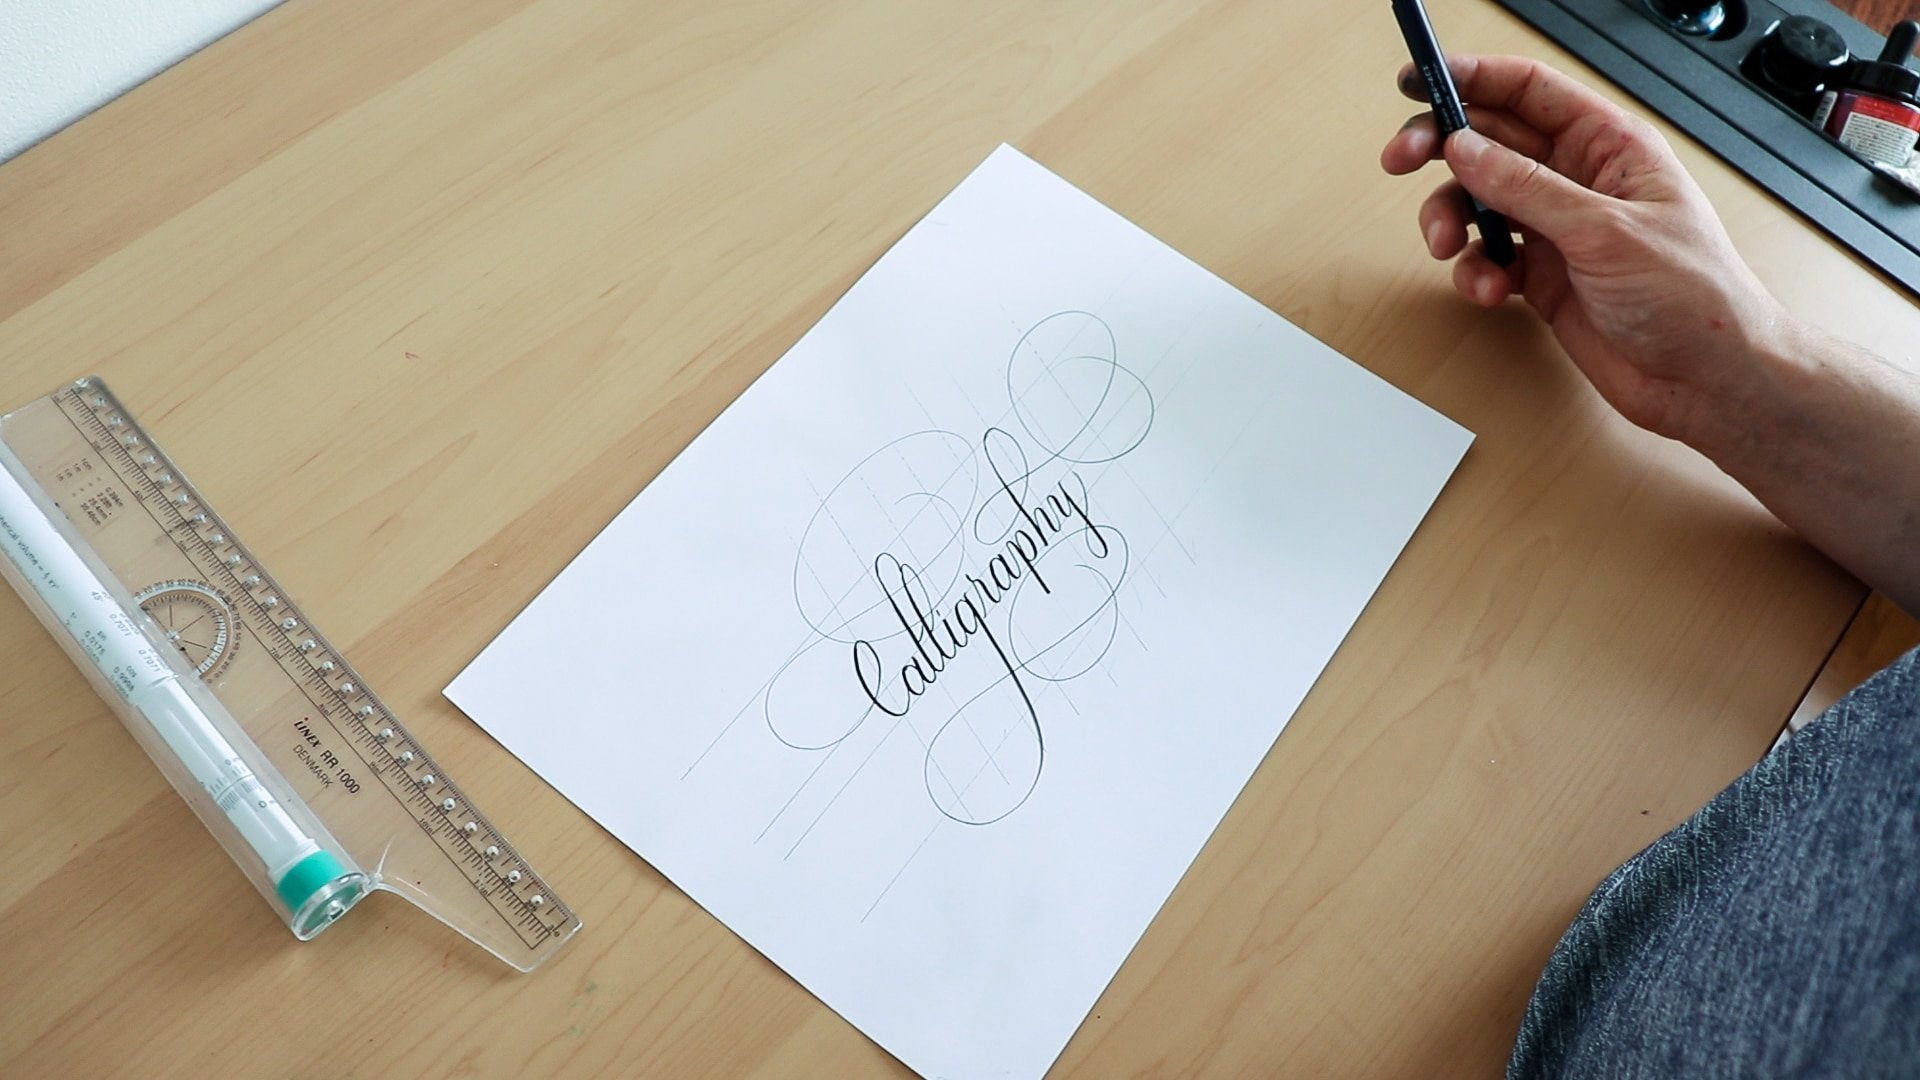 Calligraphy flourishing with high descenders and ascenders.